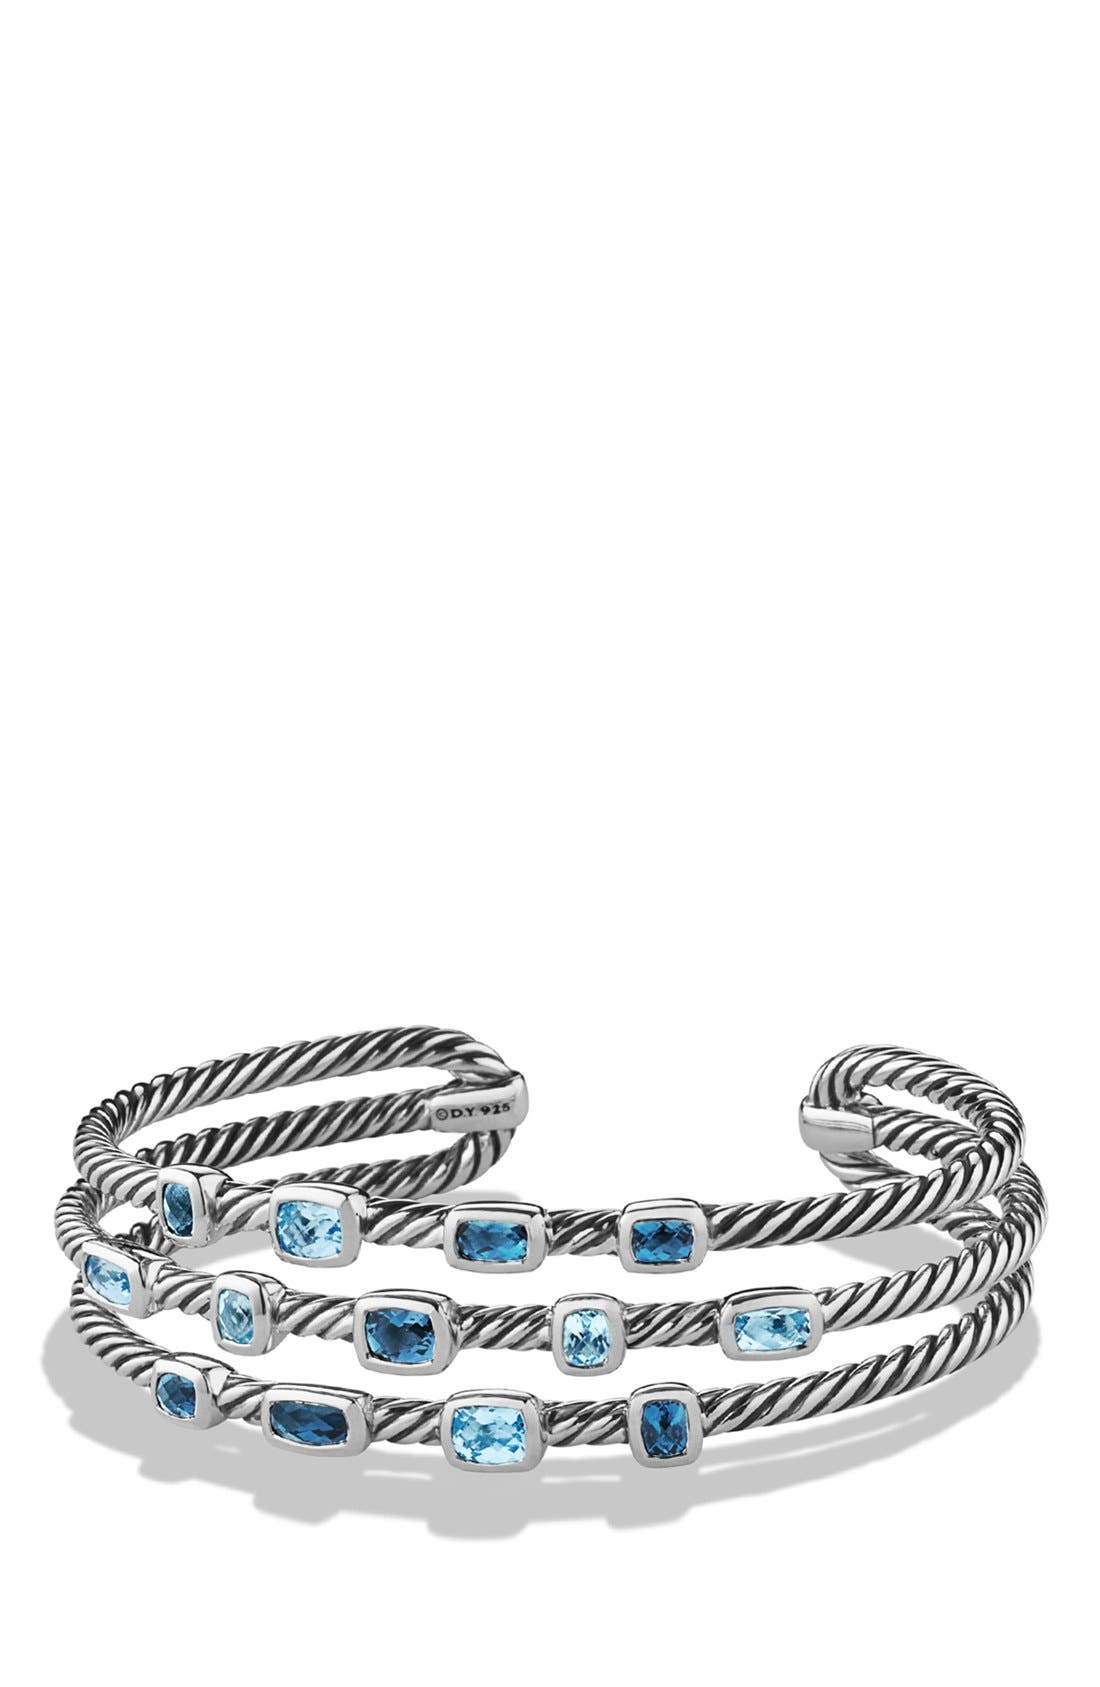 Alternate Image 1 Selected - David Yurman 'Confetti' Narrow Cuff Bracelet with Blue Topaz and Hampton Blue Topaz